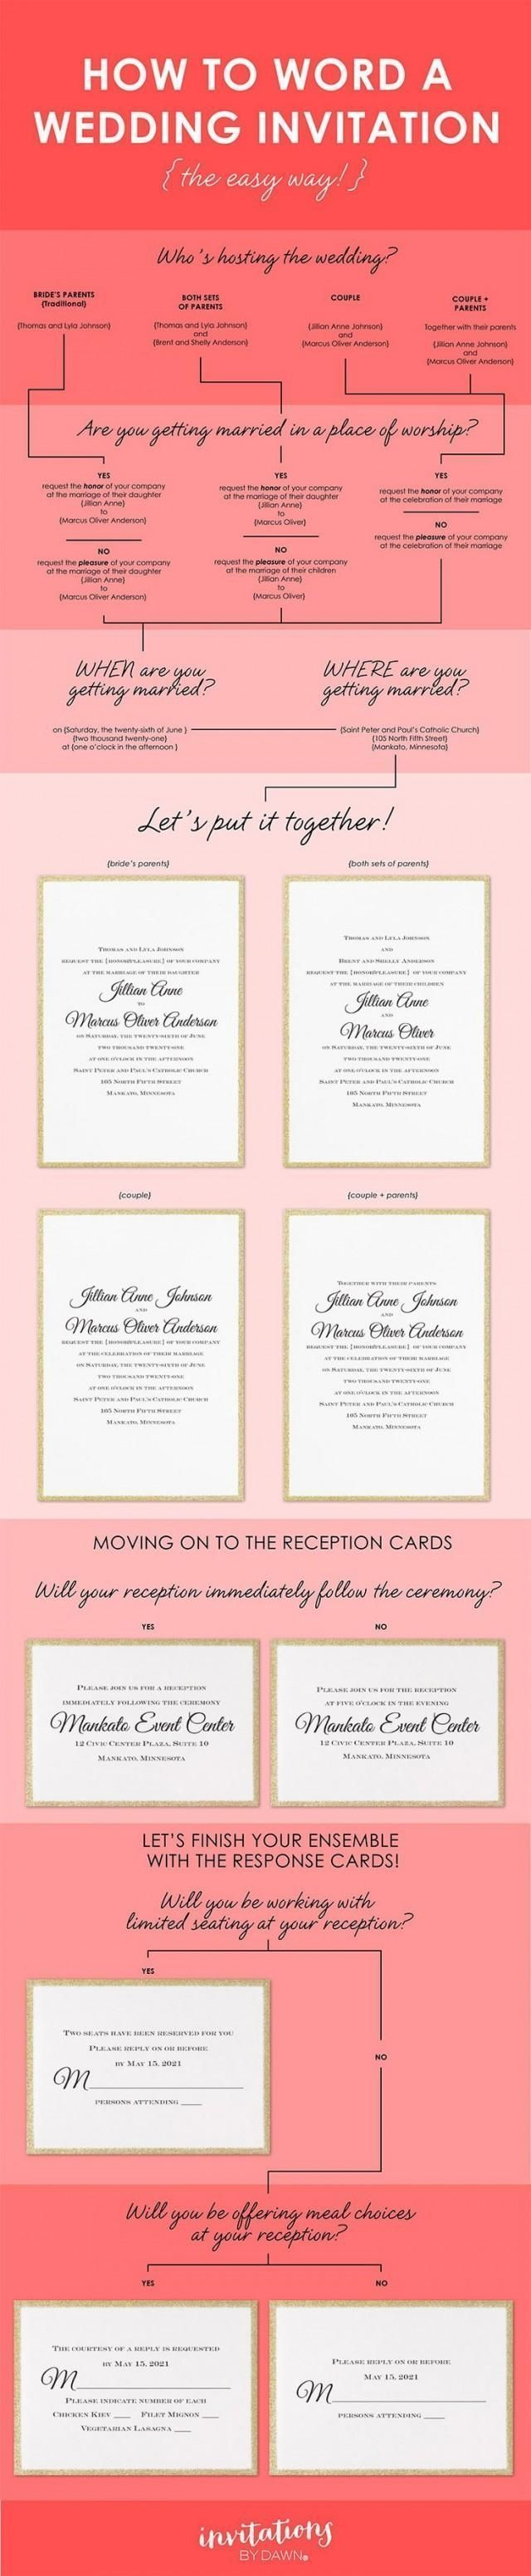 Learn how to word your wedding invitation ensemble with this fun and easy… #weddinginfographic #weddingplanninginfographic